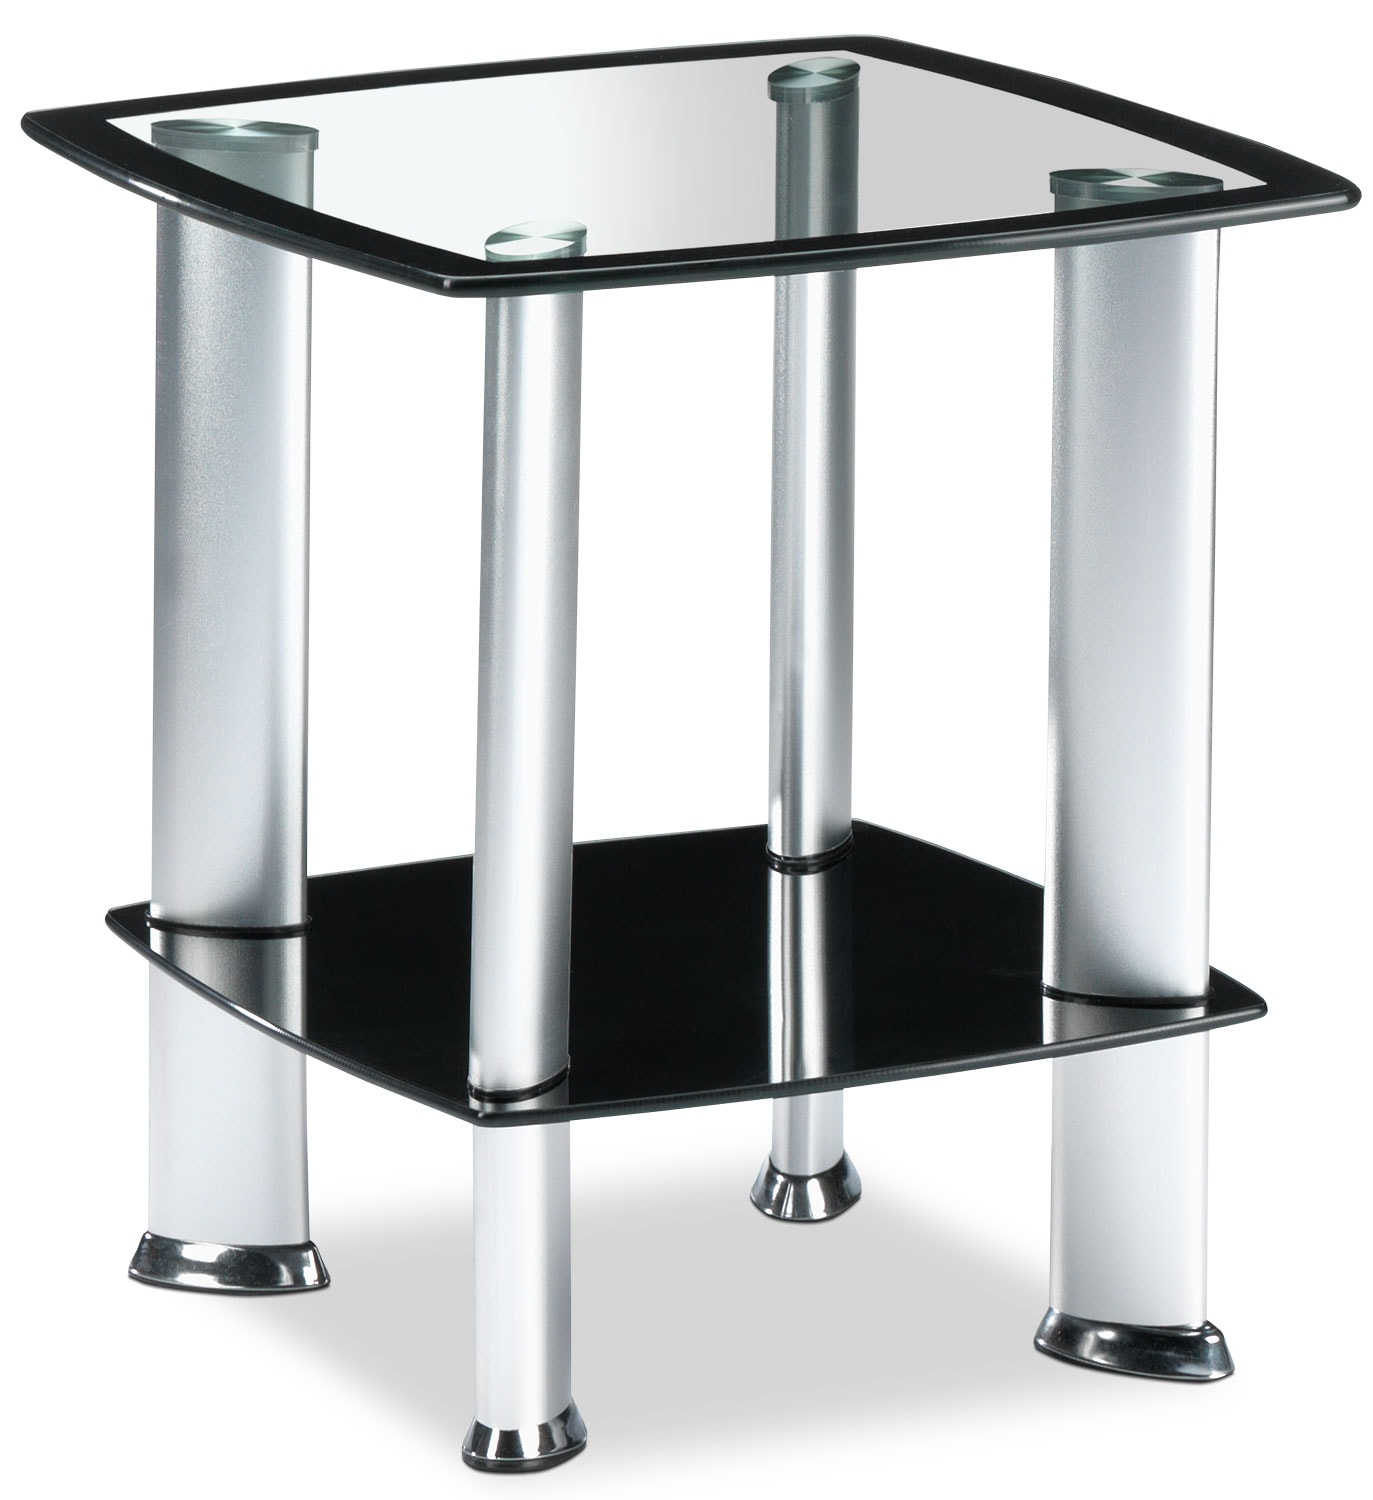 Delta Coffee Table - Silver And Black